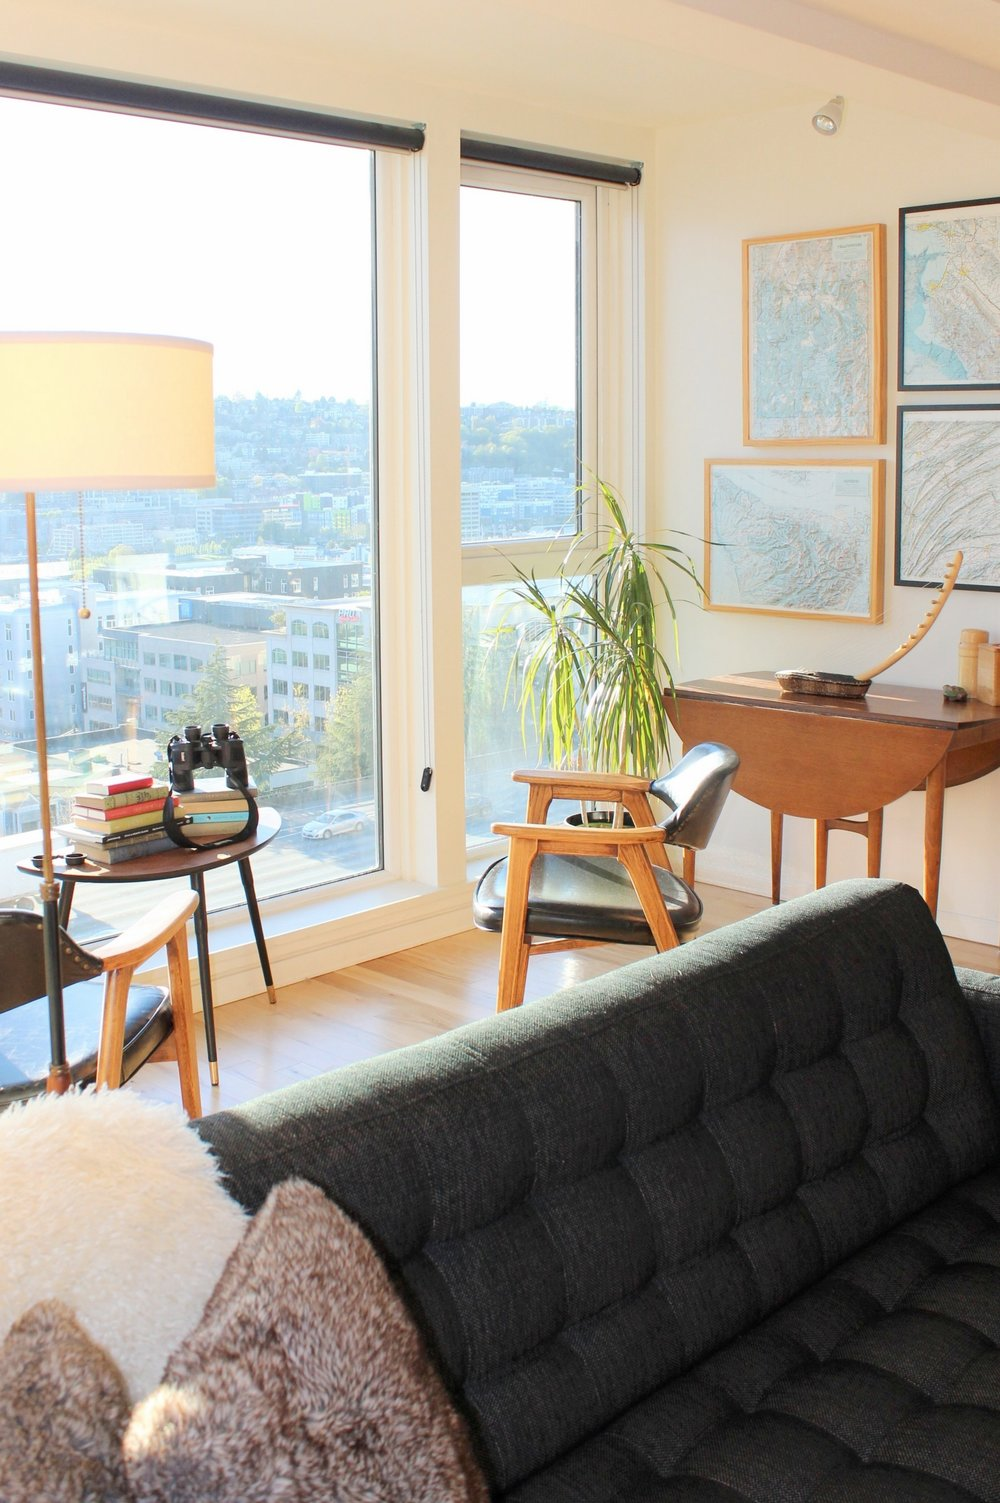 The view of South Lake Union and downtown Seattle is gorgeous! The afternoon light fills the warm, mid-century inspired space.